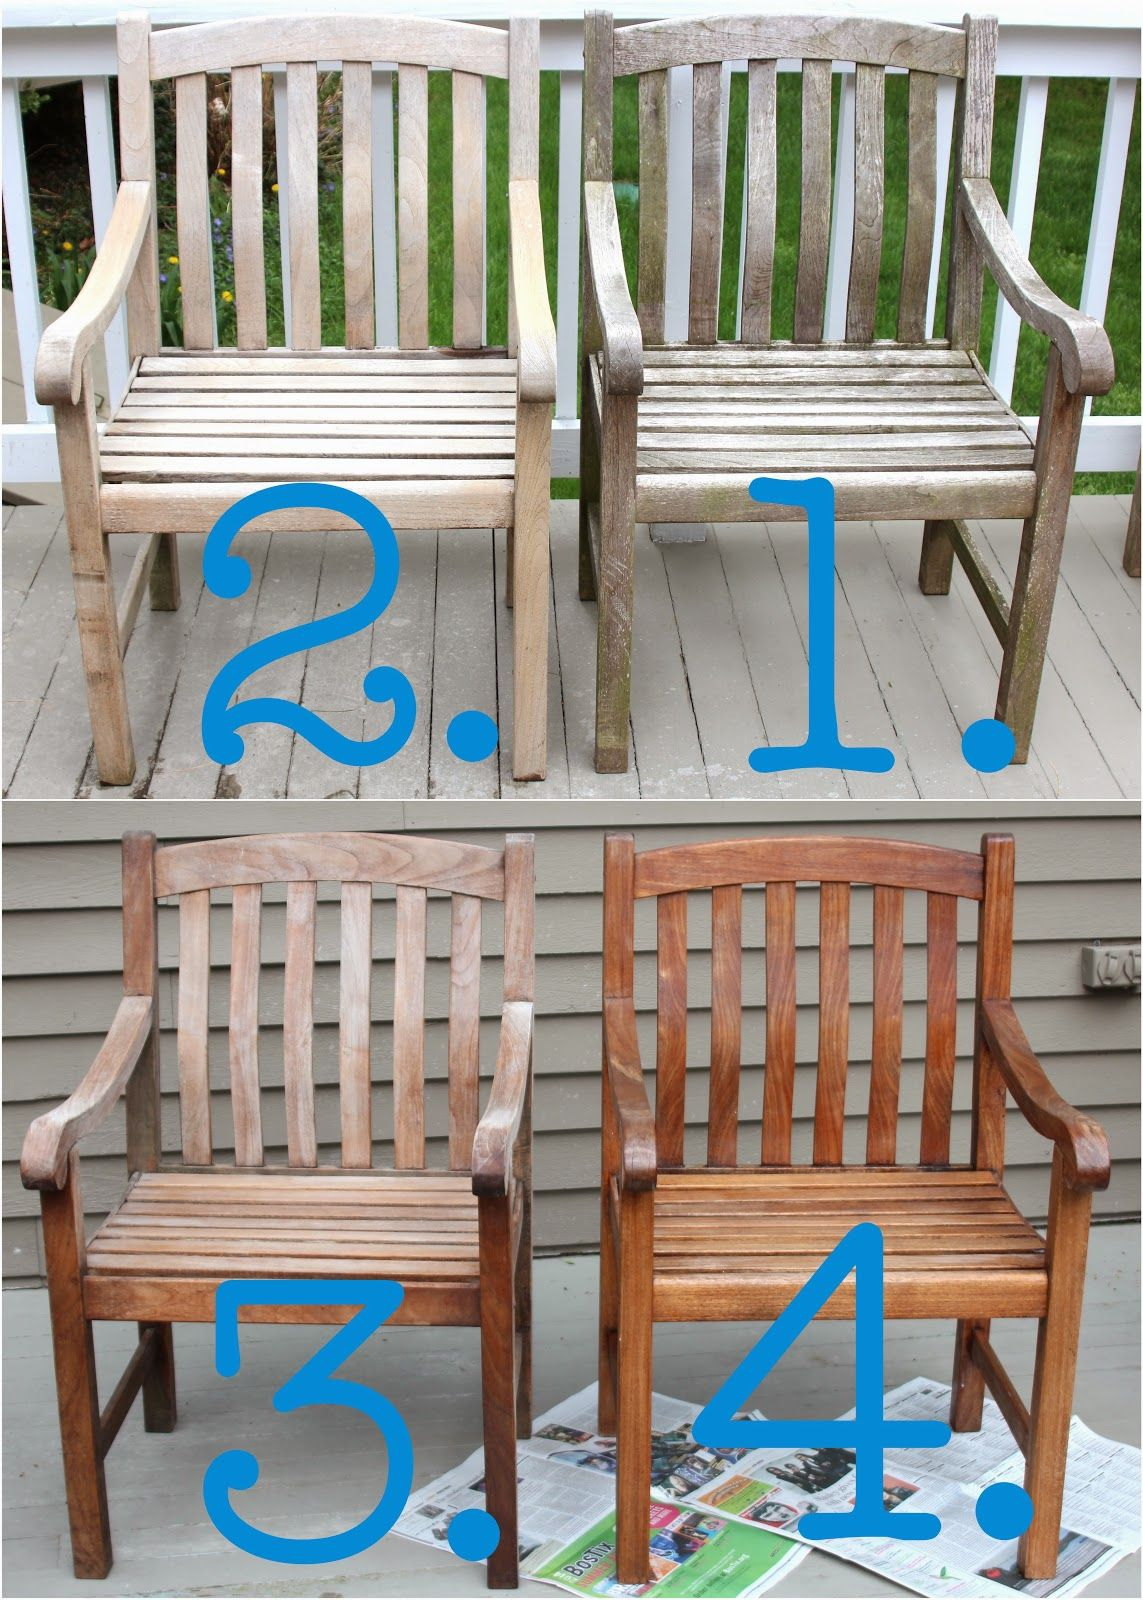 Shine your light cleaning sealing outdoor teak furniture